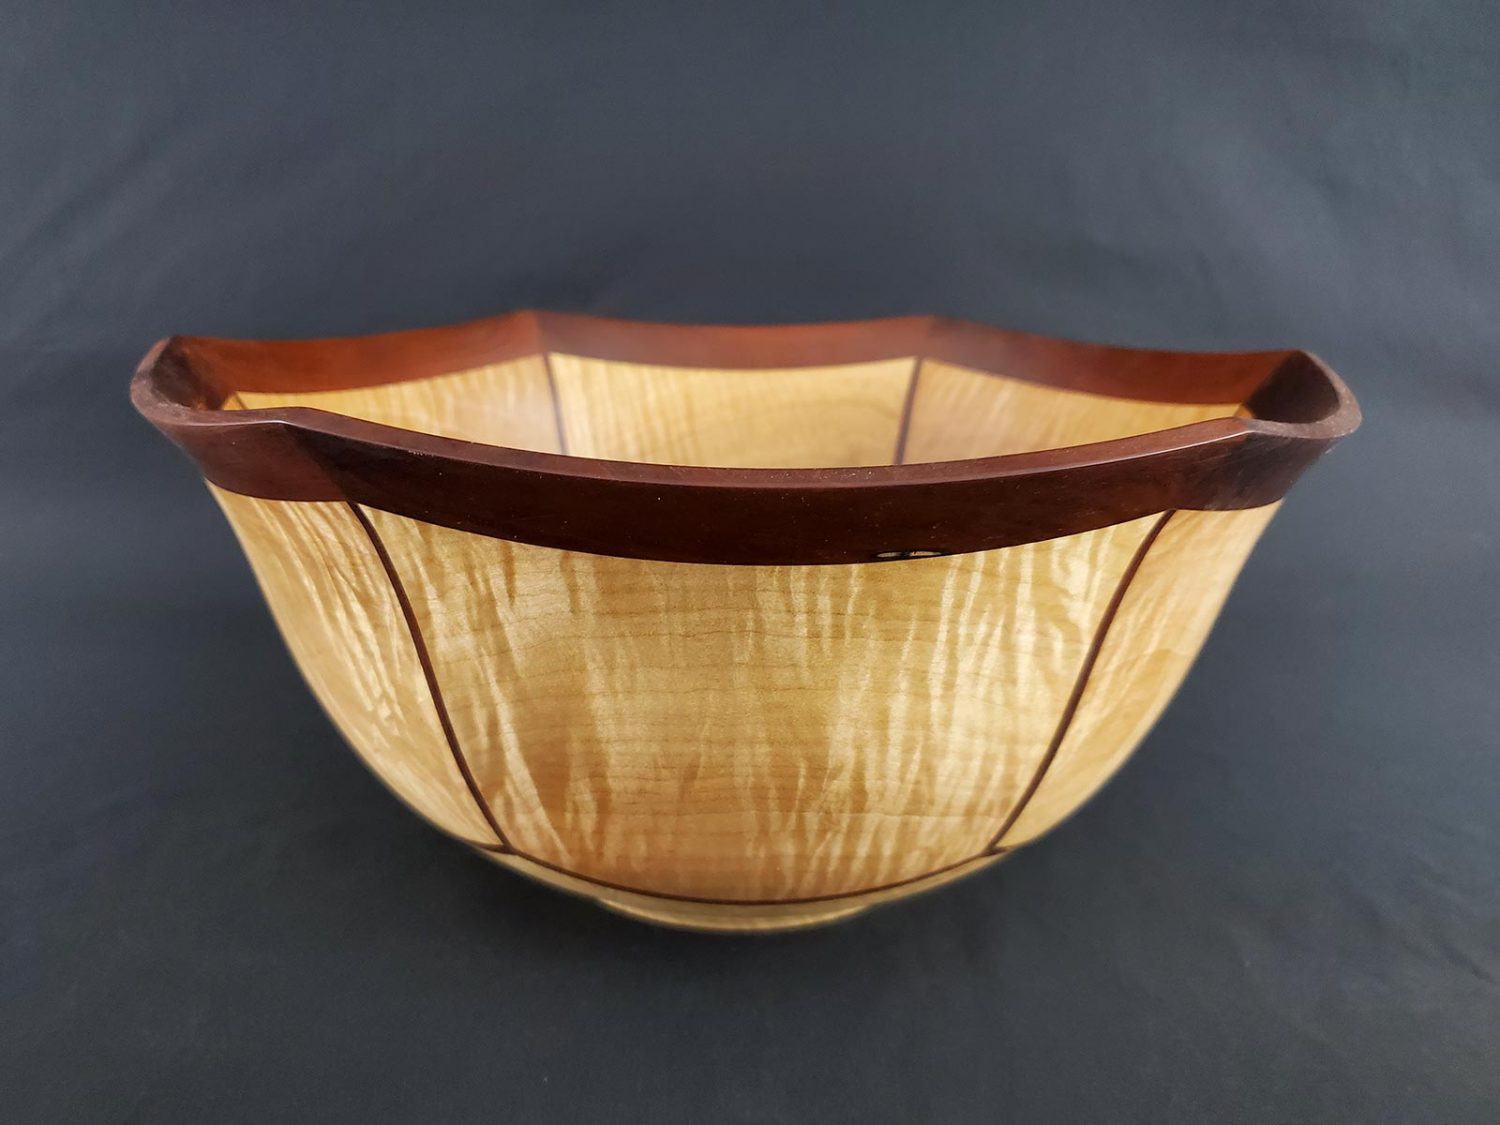 March 2021 Exhibits and Virtual Tour - Handcrafted wooden vessel by John Harden